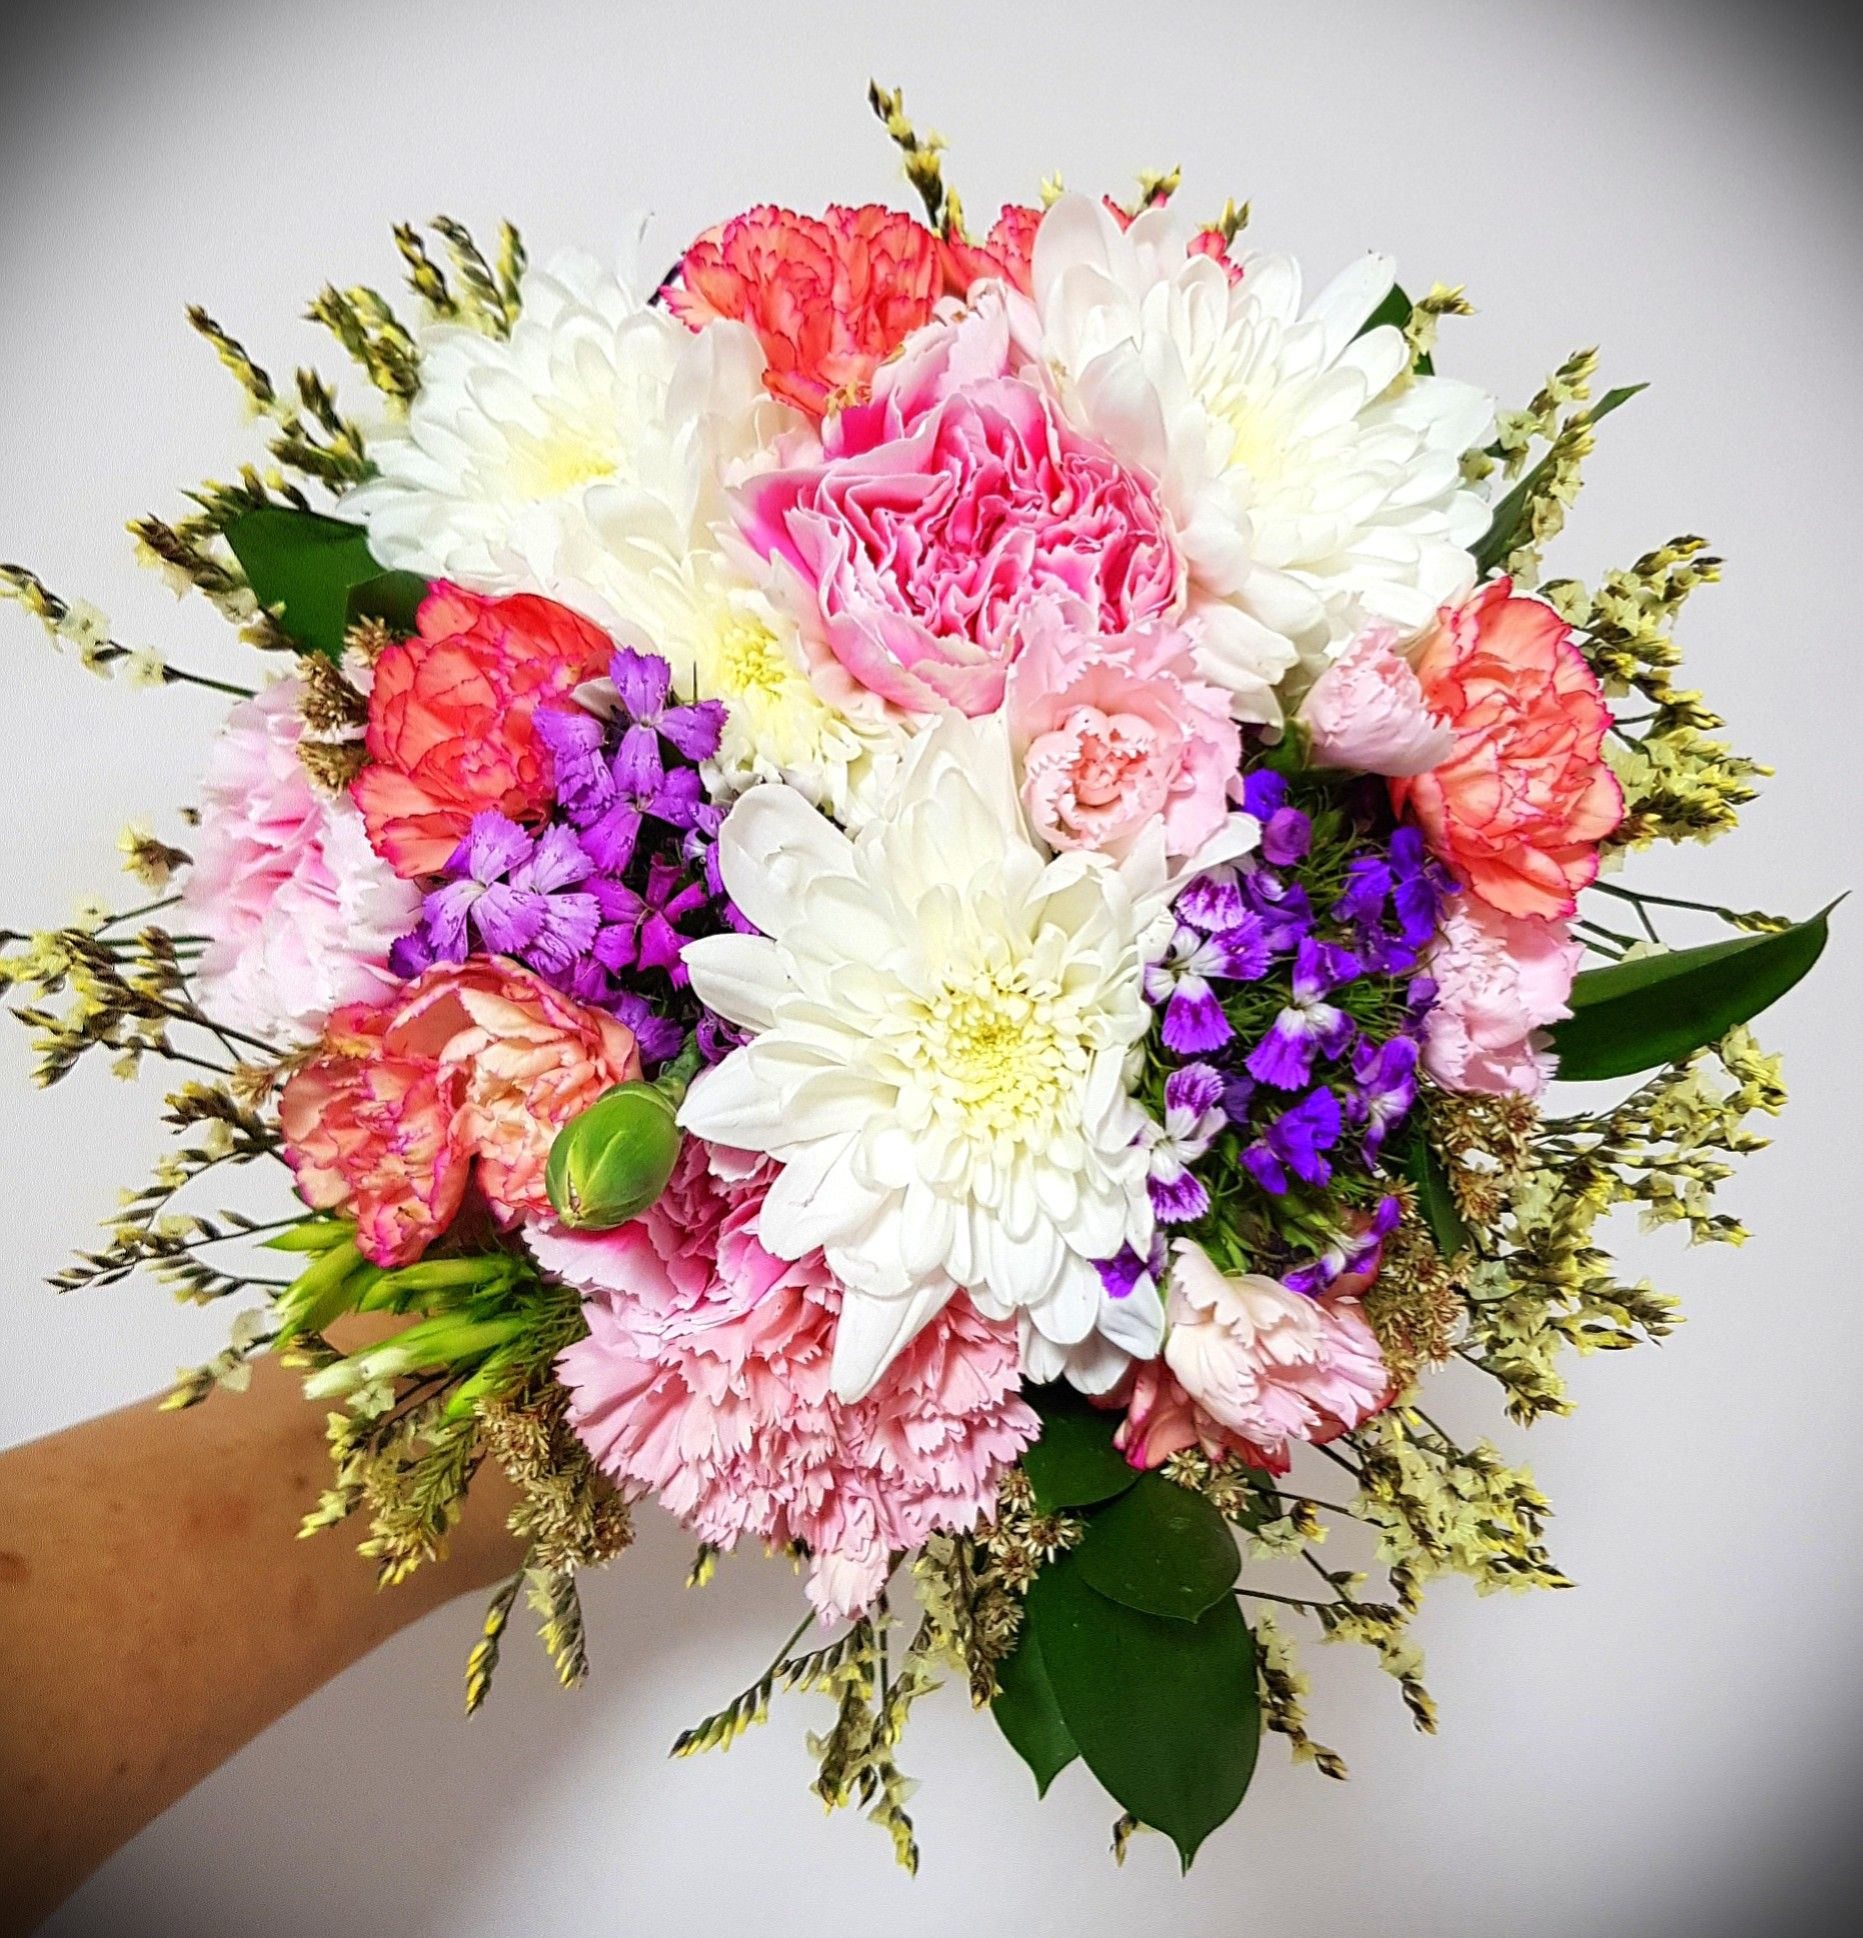 Wedding Flowers Cost Singapore in 2020 Wedding flowers